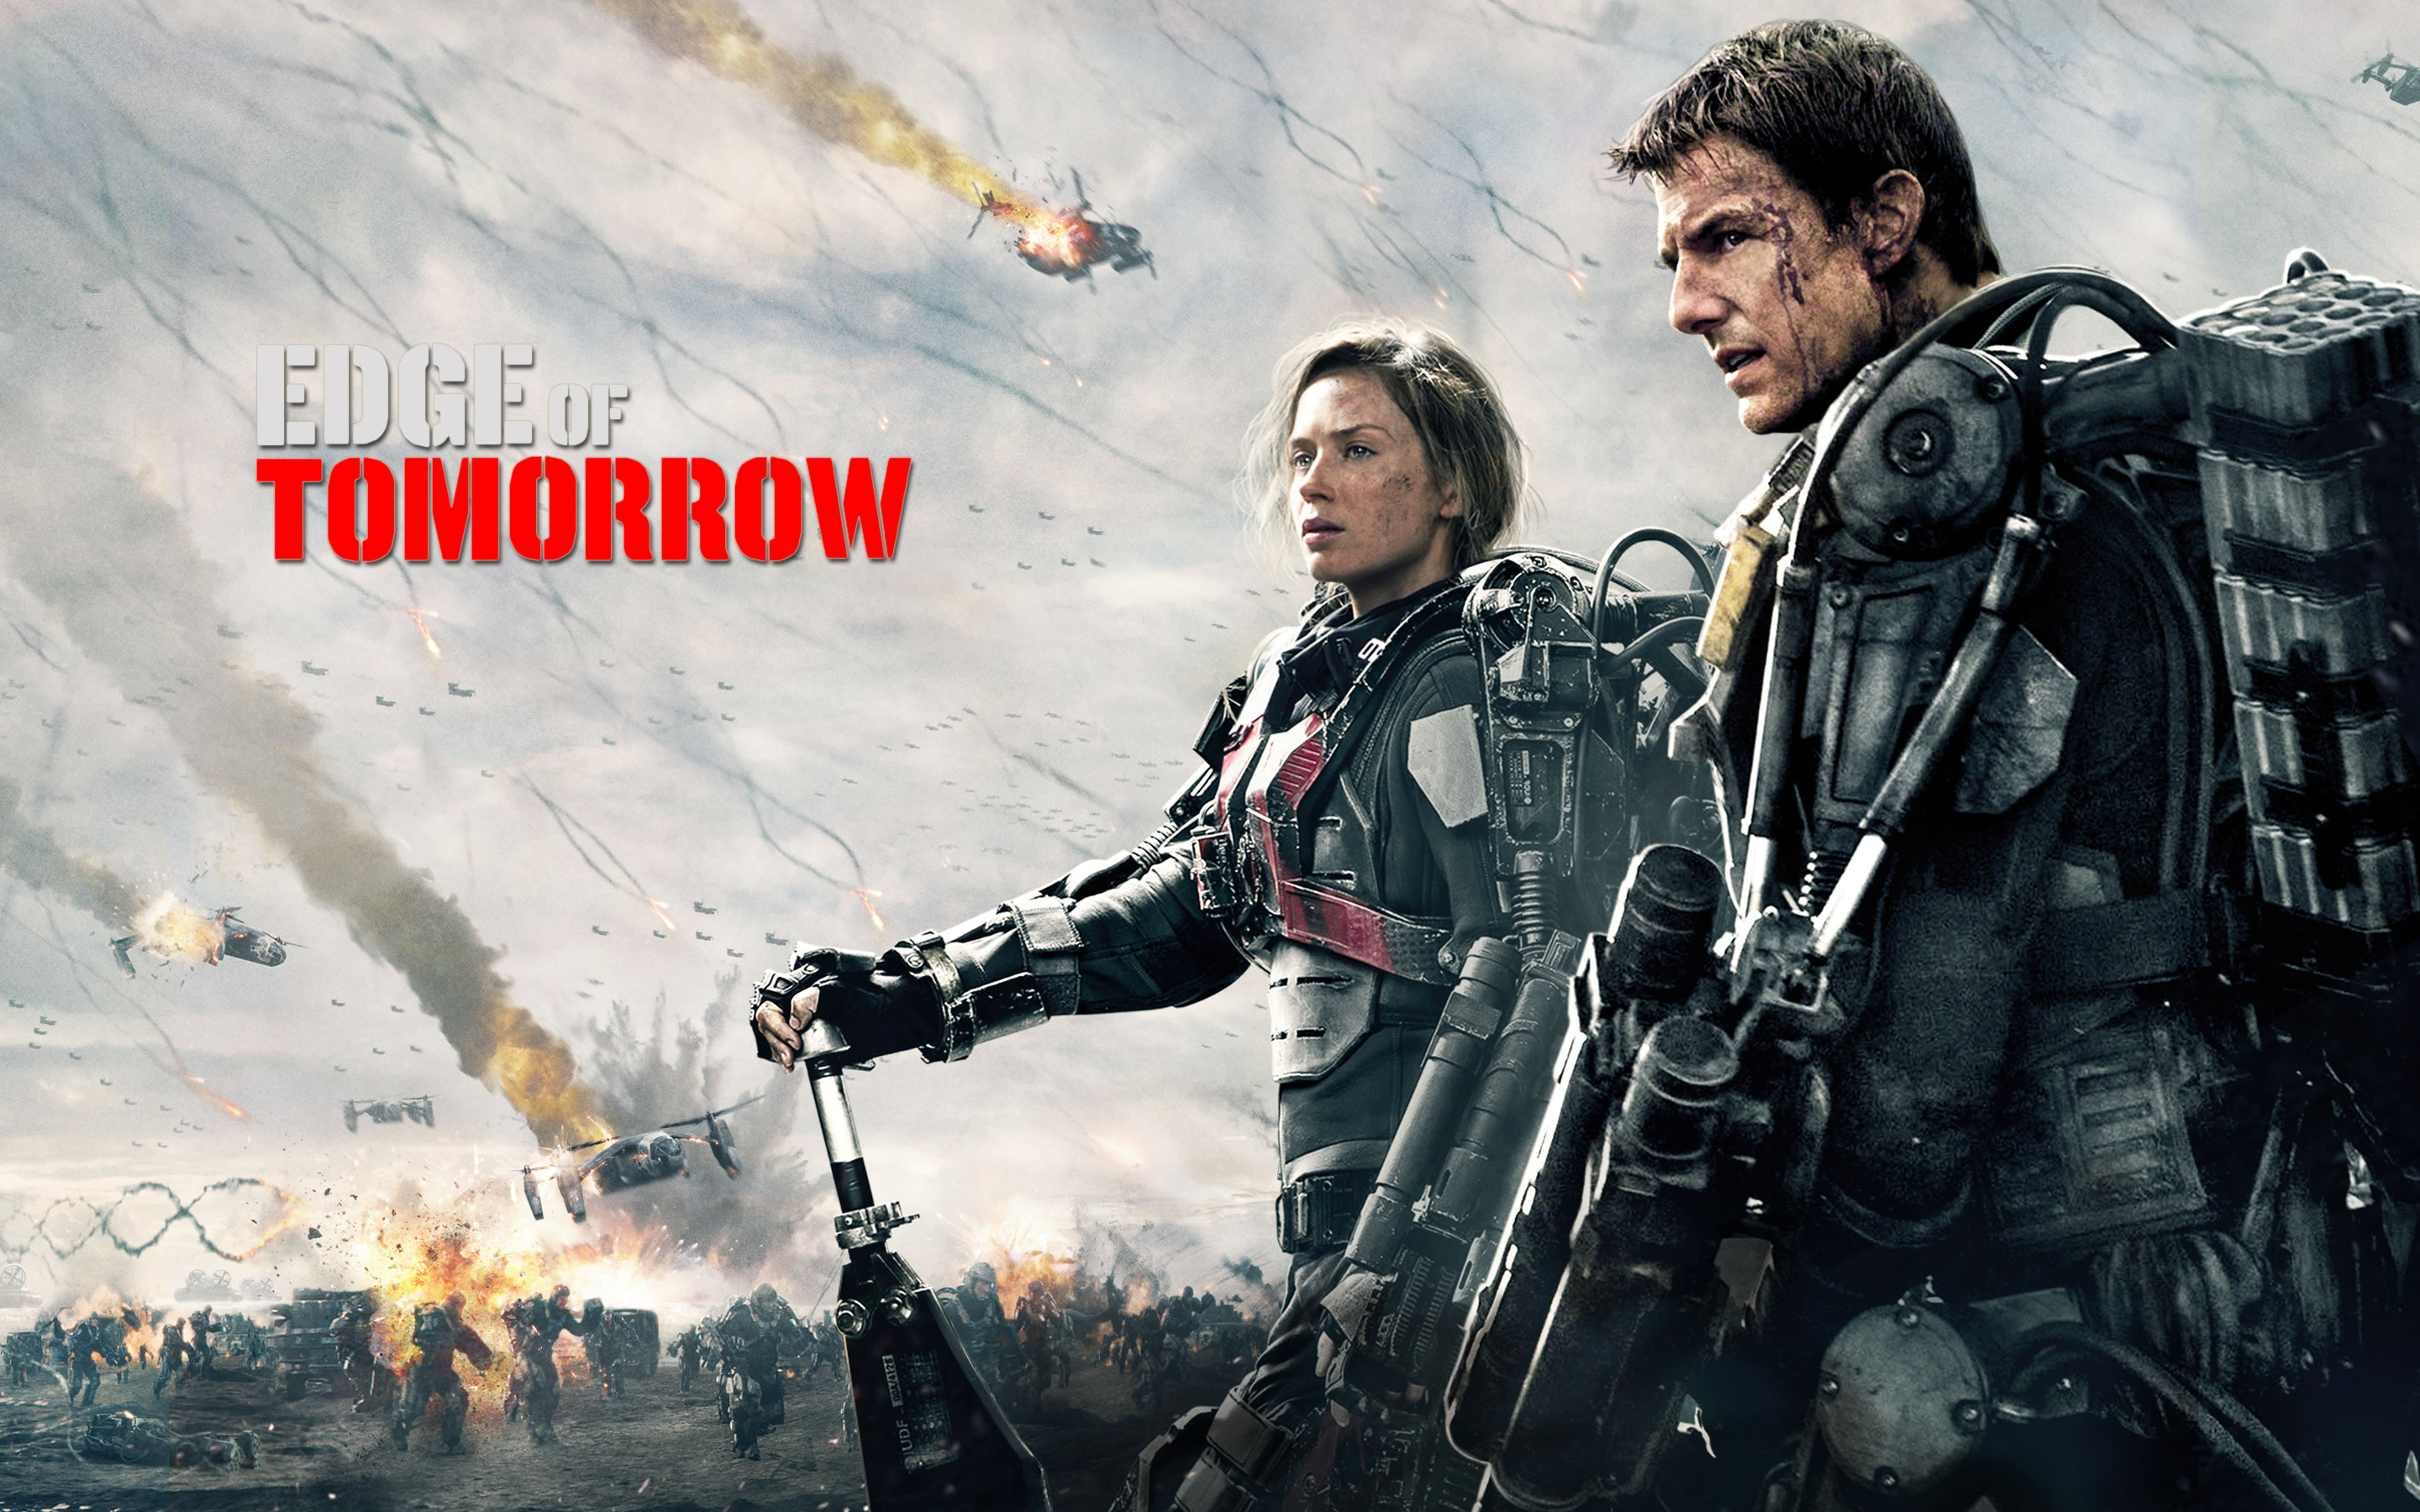 Edge of Tomorrow's home release shows studio still has no clue how to market it | Blastr